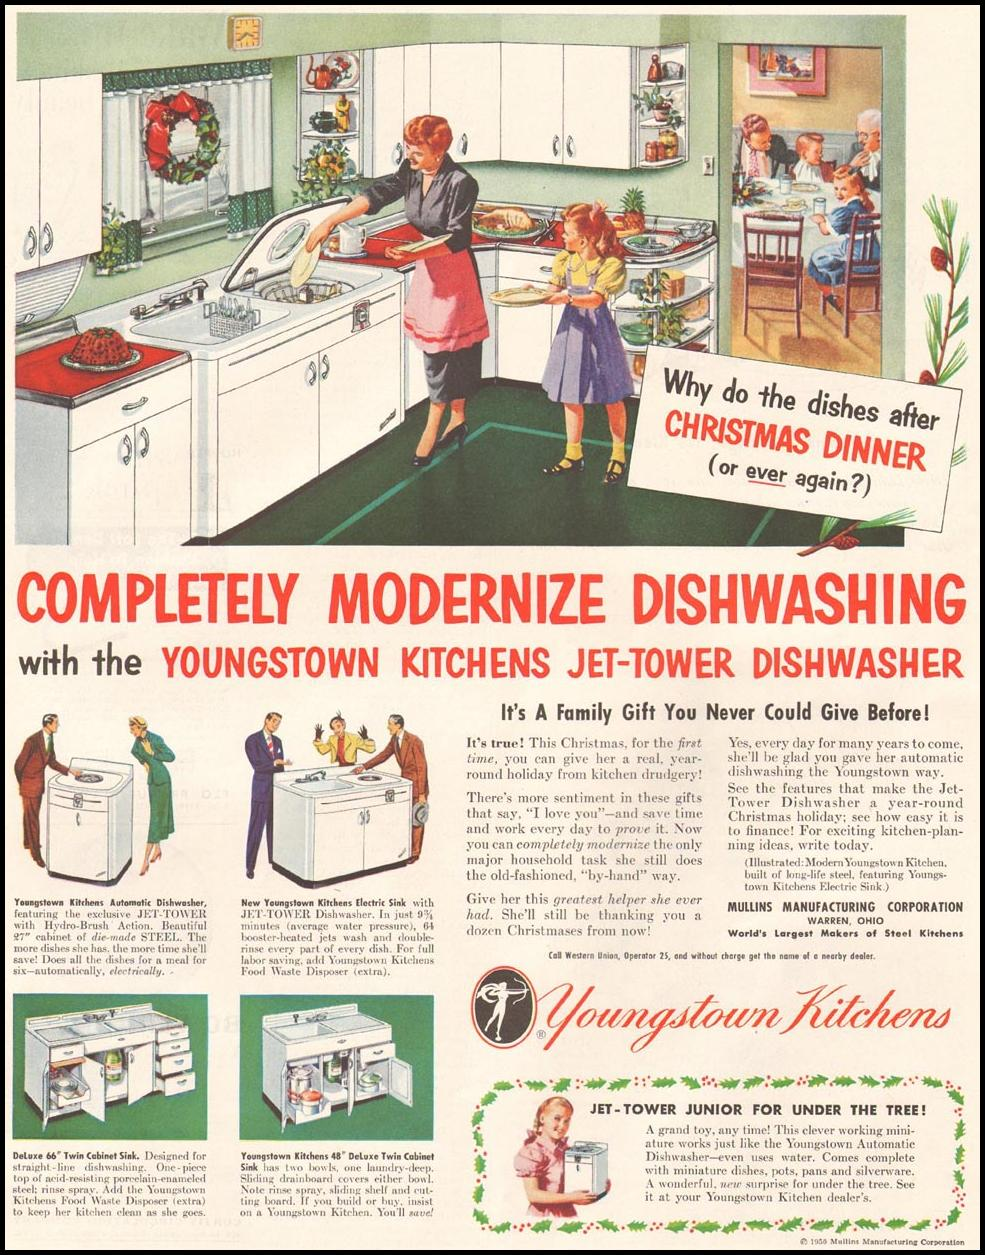 YOUNGSTOWN JET-TOWER DISHWASHER